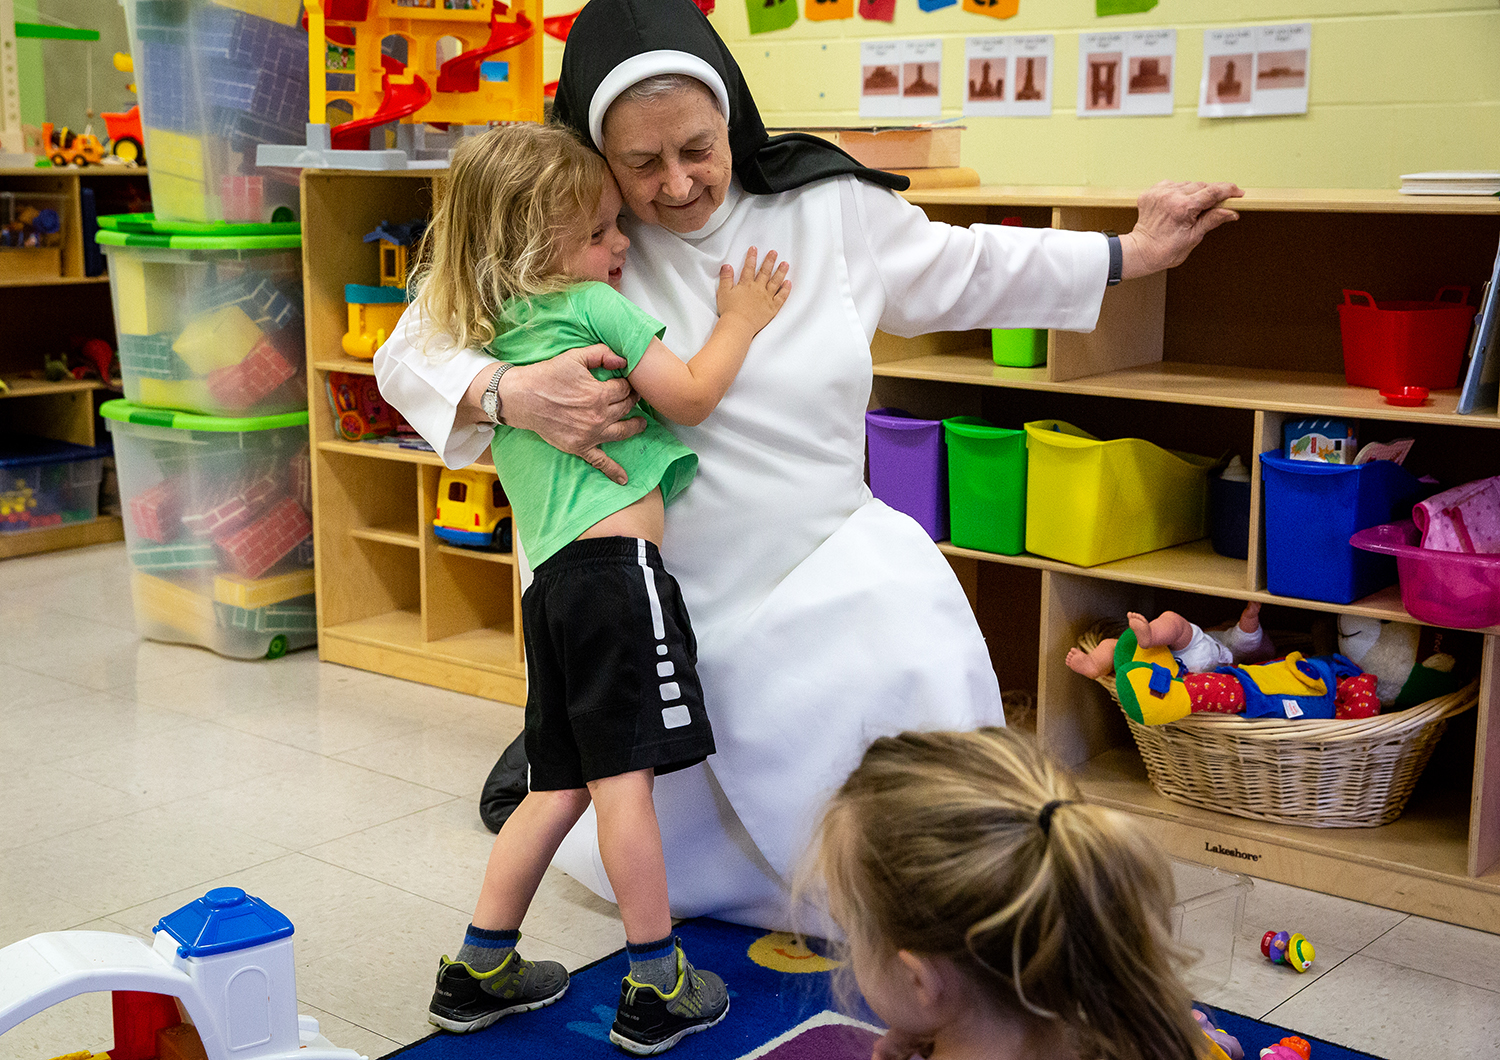 Sr. Joan Sorge says it's the hugs she'll miss the most when she's no longer in the school every day. Sorge, who has been principal at St. Agnes School for 14 years and a Catholic educator for 40 years, is retiring and taking a new assignment with her order, the Springfield Dominicans. She spent time with pre-schoolers on their last day Thursday, May 17, 2018 at St. Agnes School in Springfield, Ill. [Rich Saal/The State Journal-Register]